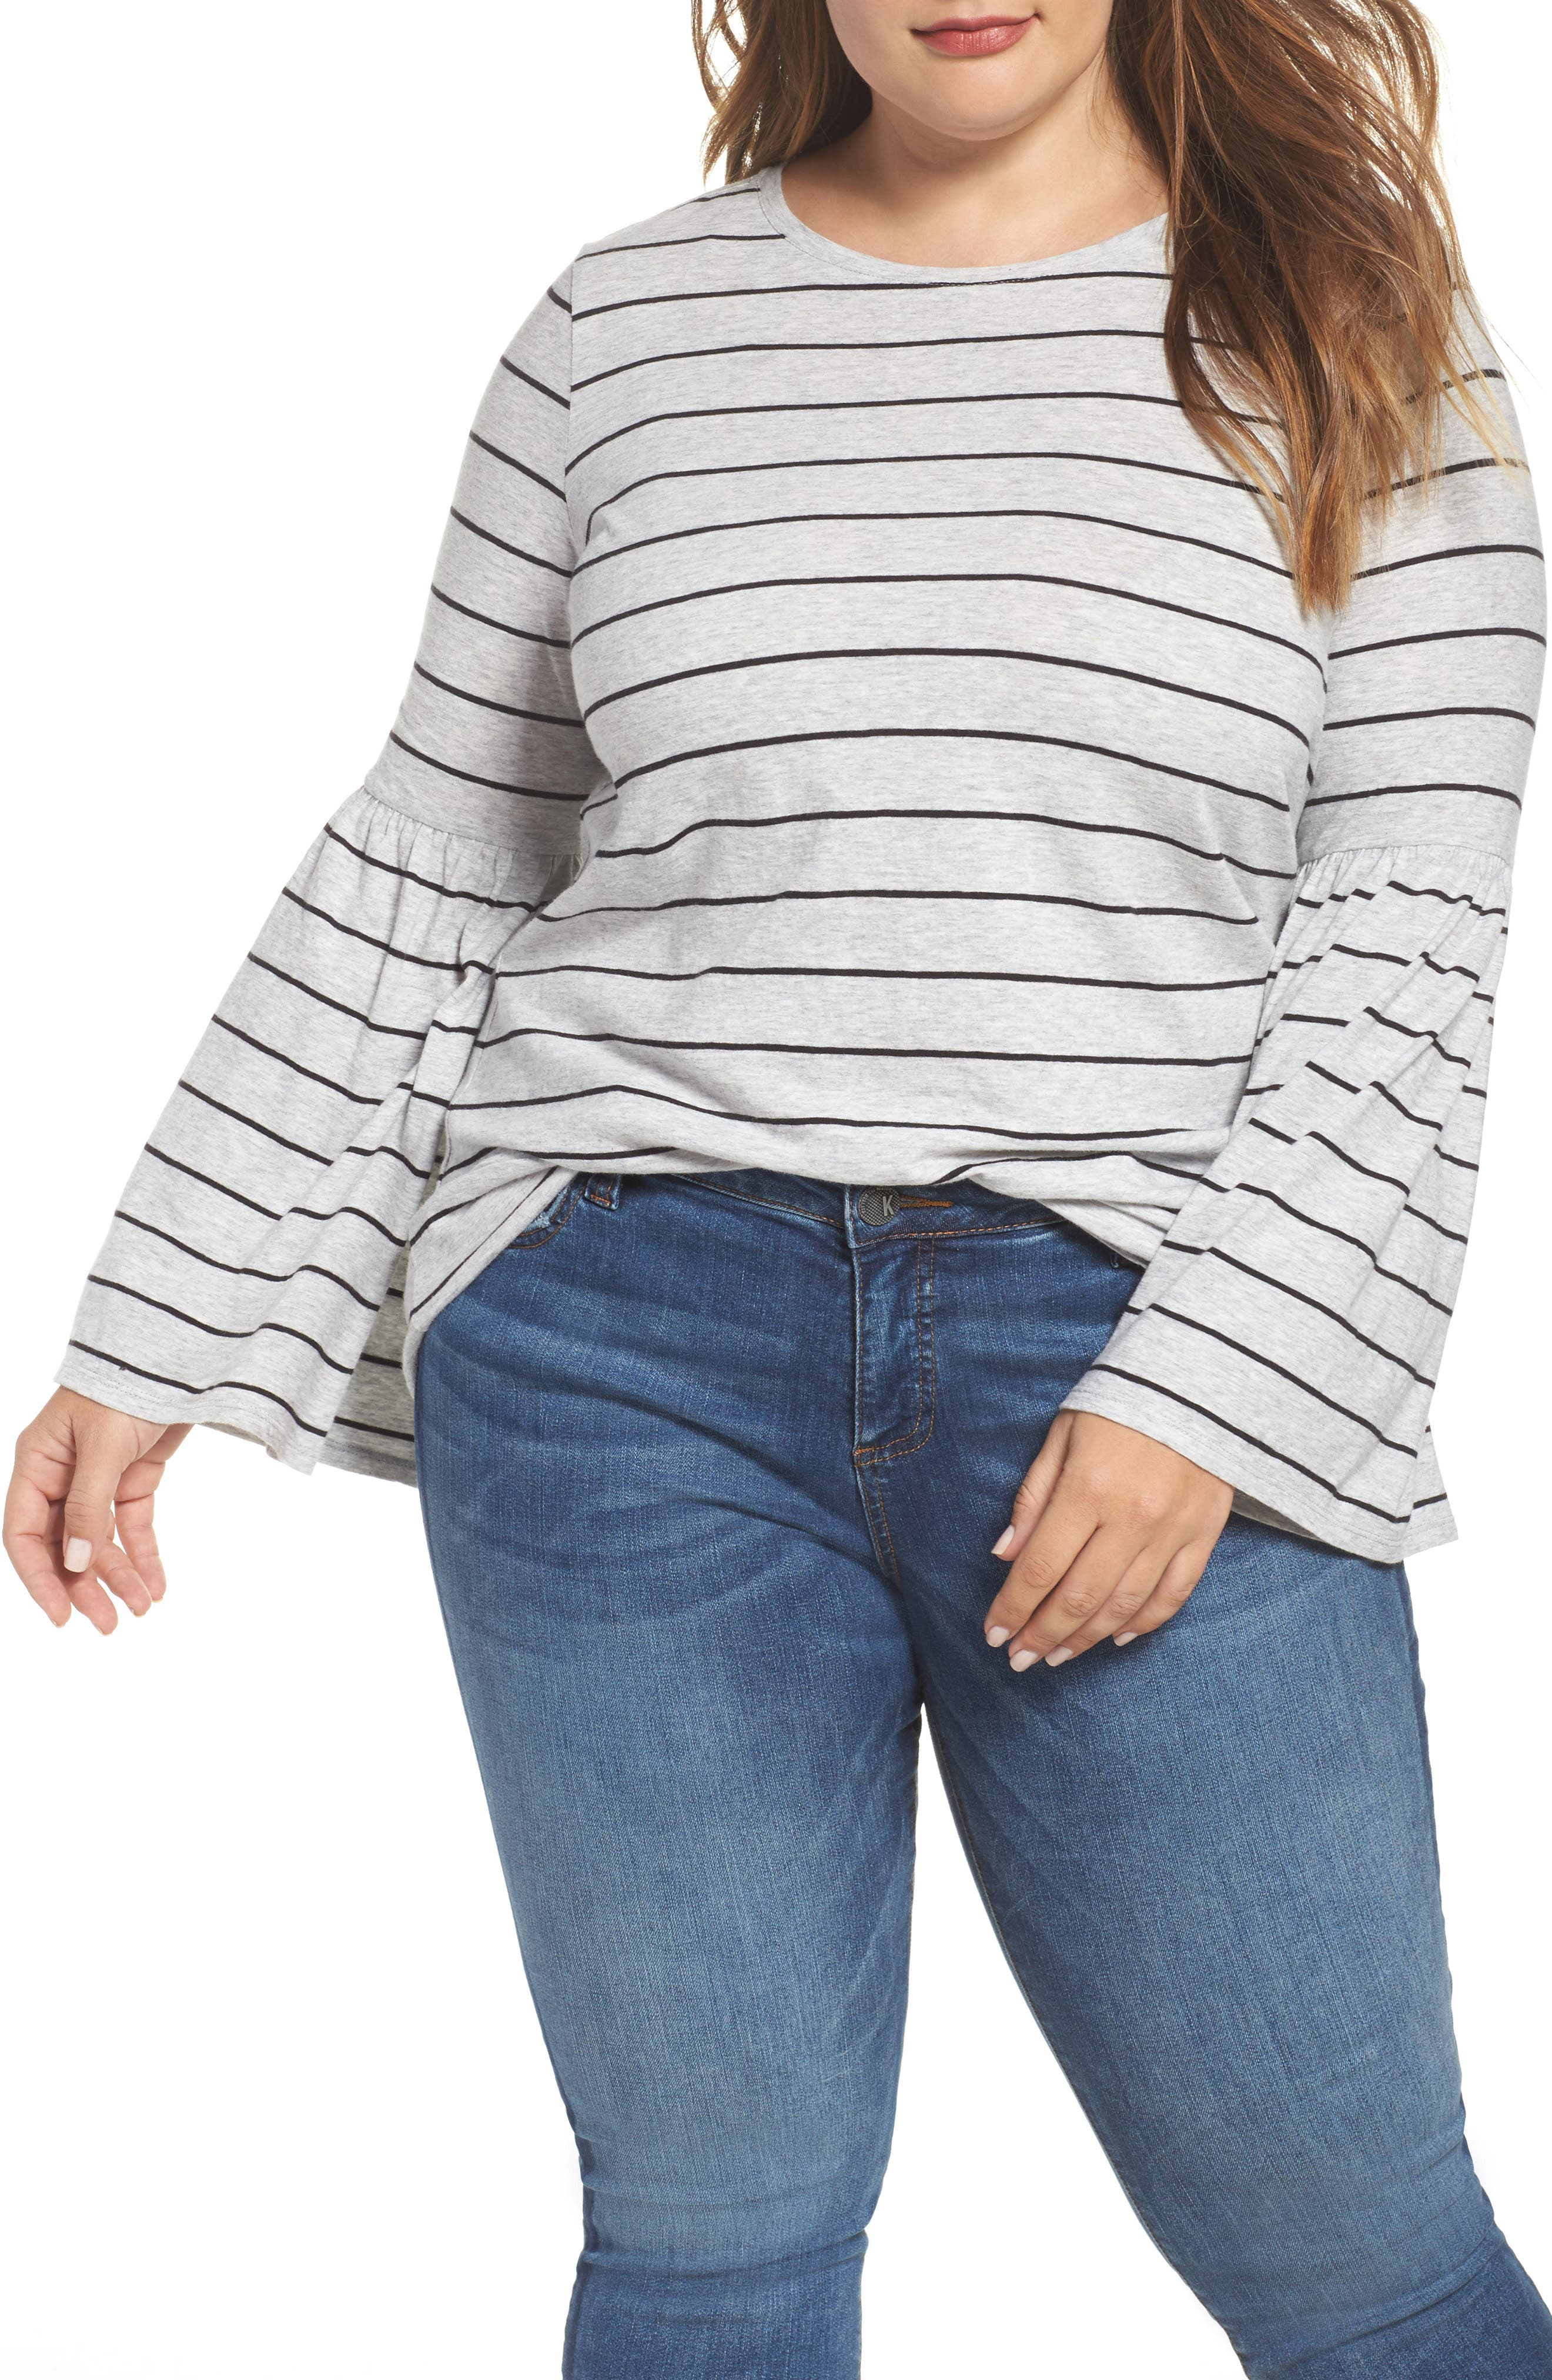 Alternate Image 1 Selected - Two by Vince Camuto Nova Stripe Bell Sleeve Top (Plus Size)